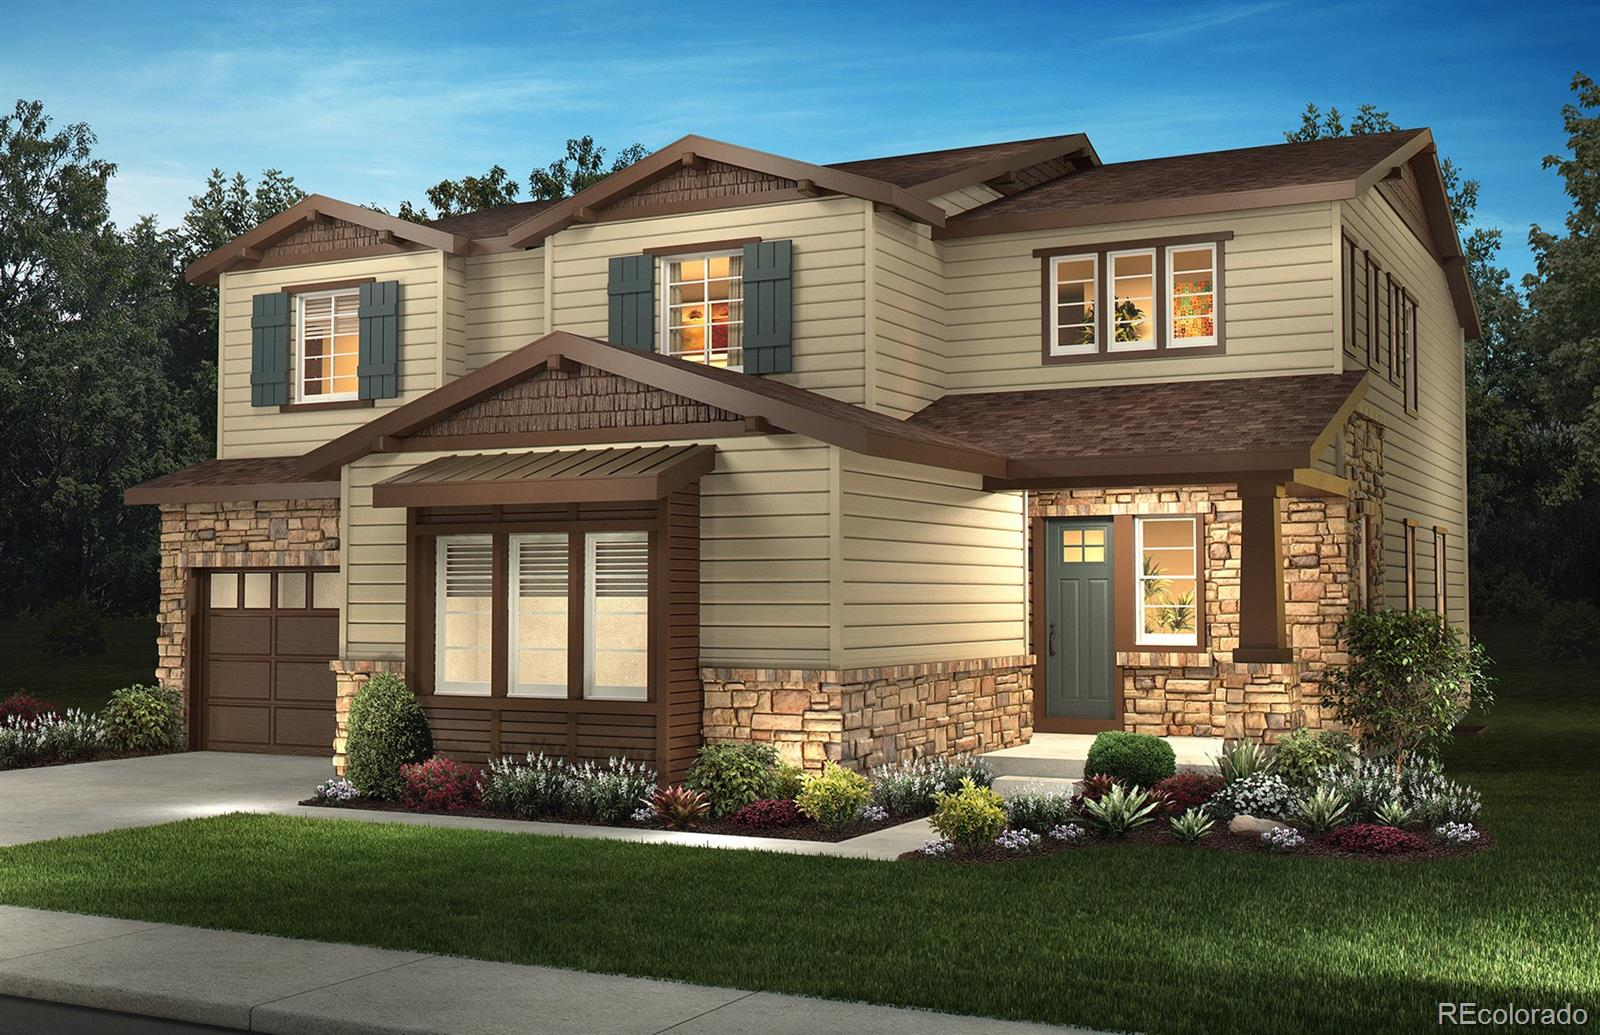 Available July 2020!  Gorgeous Pinyon 2 story features 4 beds (3 upper / 1 main), 3 baths, great room, kitchen w/morning room, upper laundry, 2 + 1 car garages and more.  Stunning design finishes including a main floor bedroom and full bath, kitchen with island, walk-in pantry and morning room, great room with fireplace, optional master bathroom shower, second floor laundry room with sink, garage service door and more. Design finishes include Black Forest Oak Qntiqued wood-style laminate floors, tile floors in the bath and laundry rooms, slab quartz Concerto kitchen perimeter counters with a full backsplash, slab quartz Calacatta Classique kitchen island counters, and Classic Portrait Maple Cotton cabinetry. Close to dining, shopping, entertainment and other amenities.  Easy commute to Southlands, DTC, Lone Tree and beyond.  HOA fees included in property taxes.